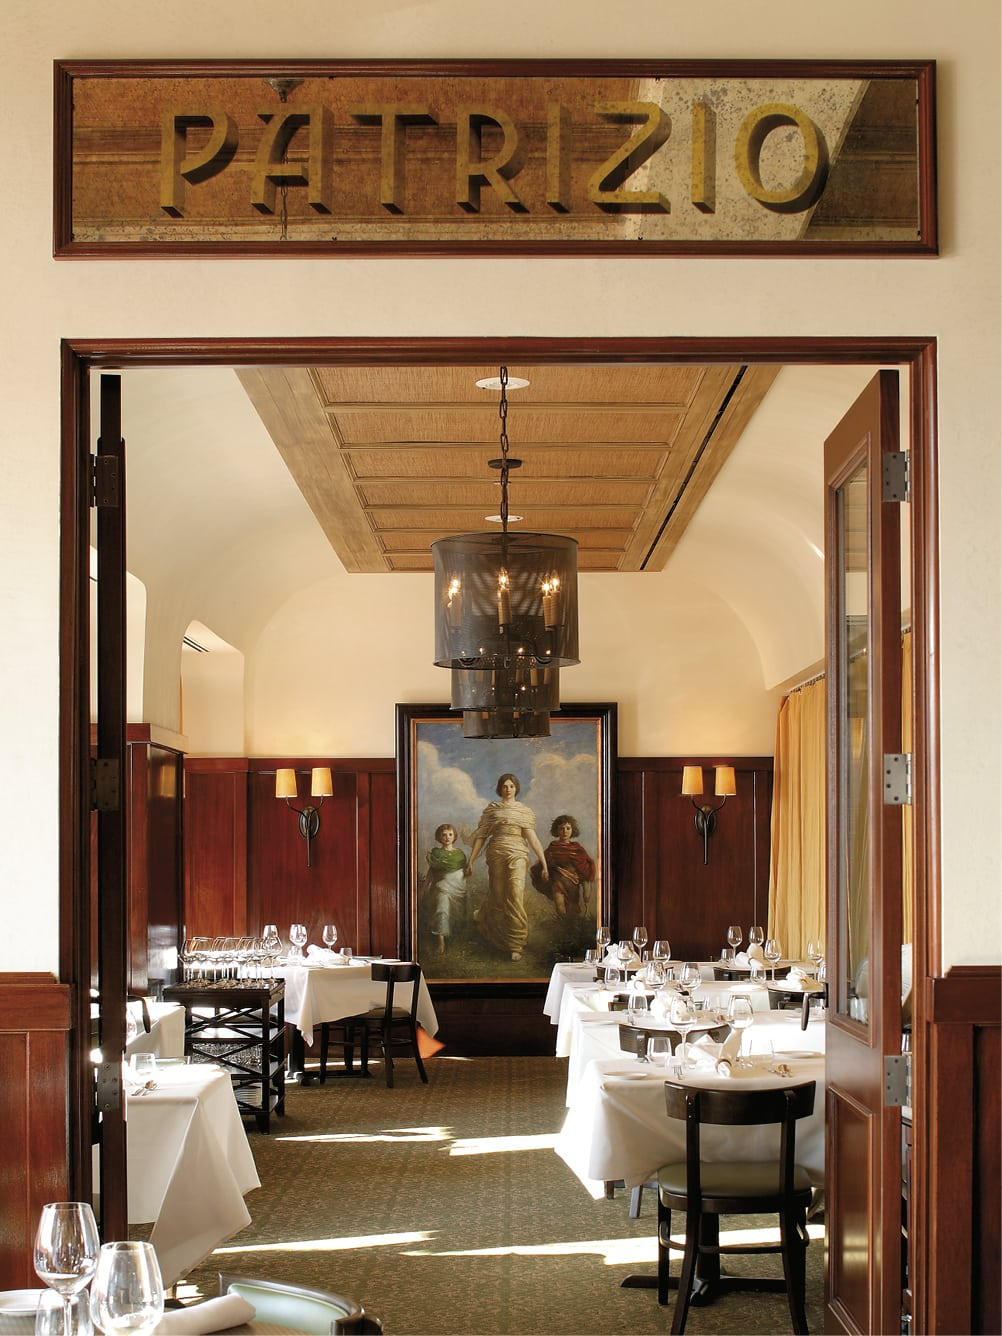 Looking through a door into the dining area with a painting hanging on the wall